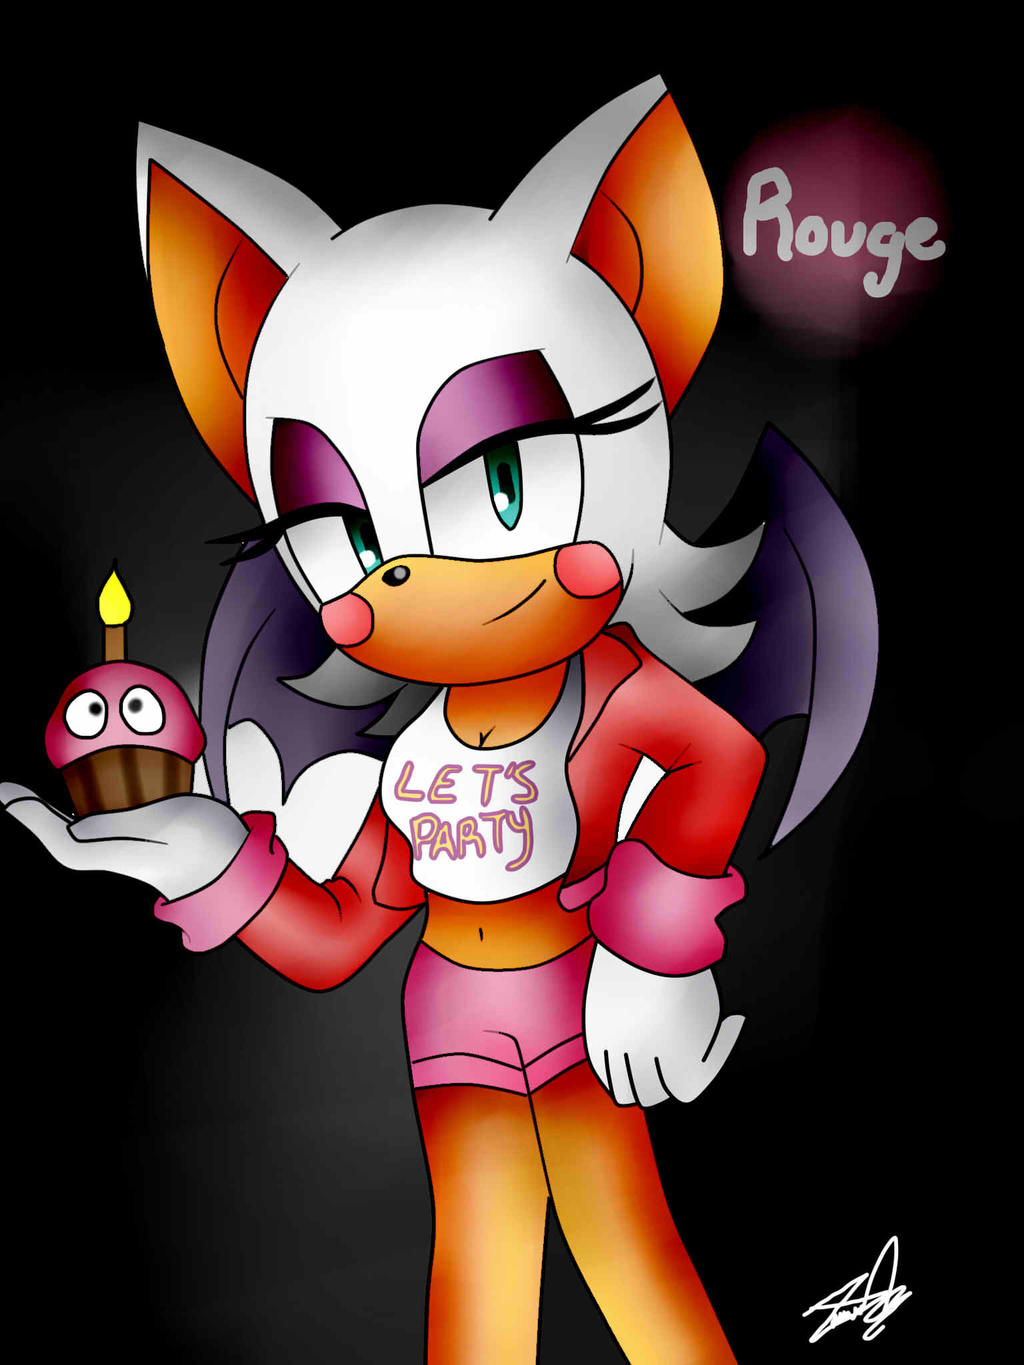 Rouge the bat toy chica by idalyaoisonic1344 on deviantart